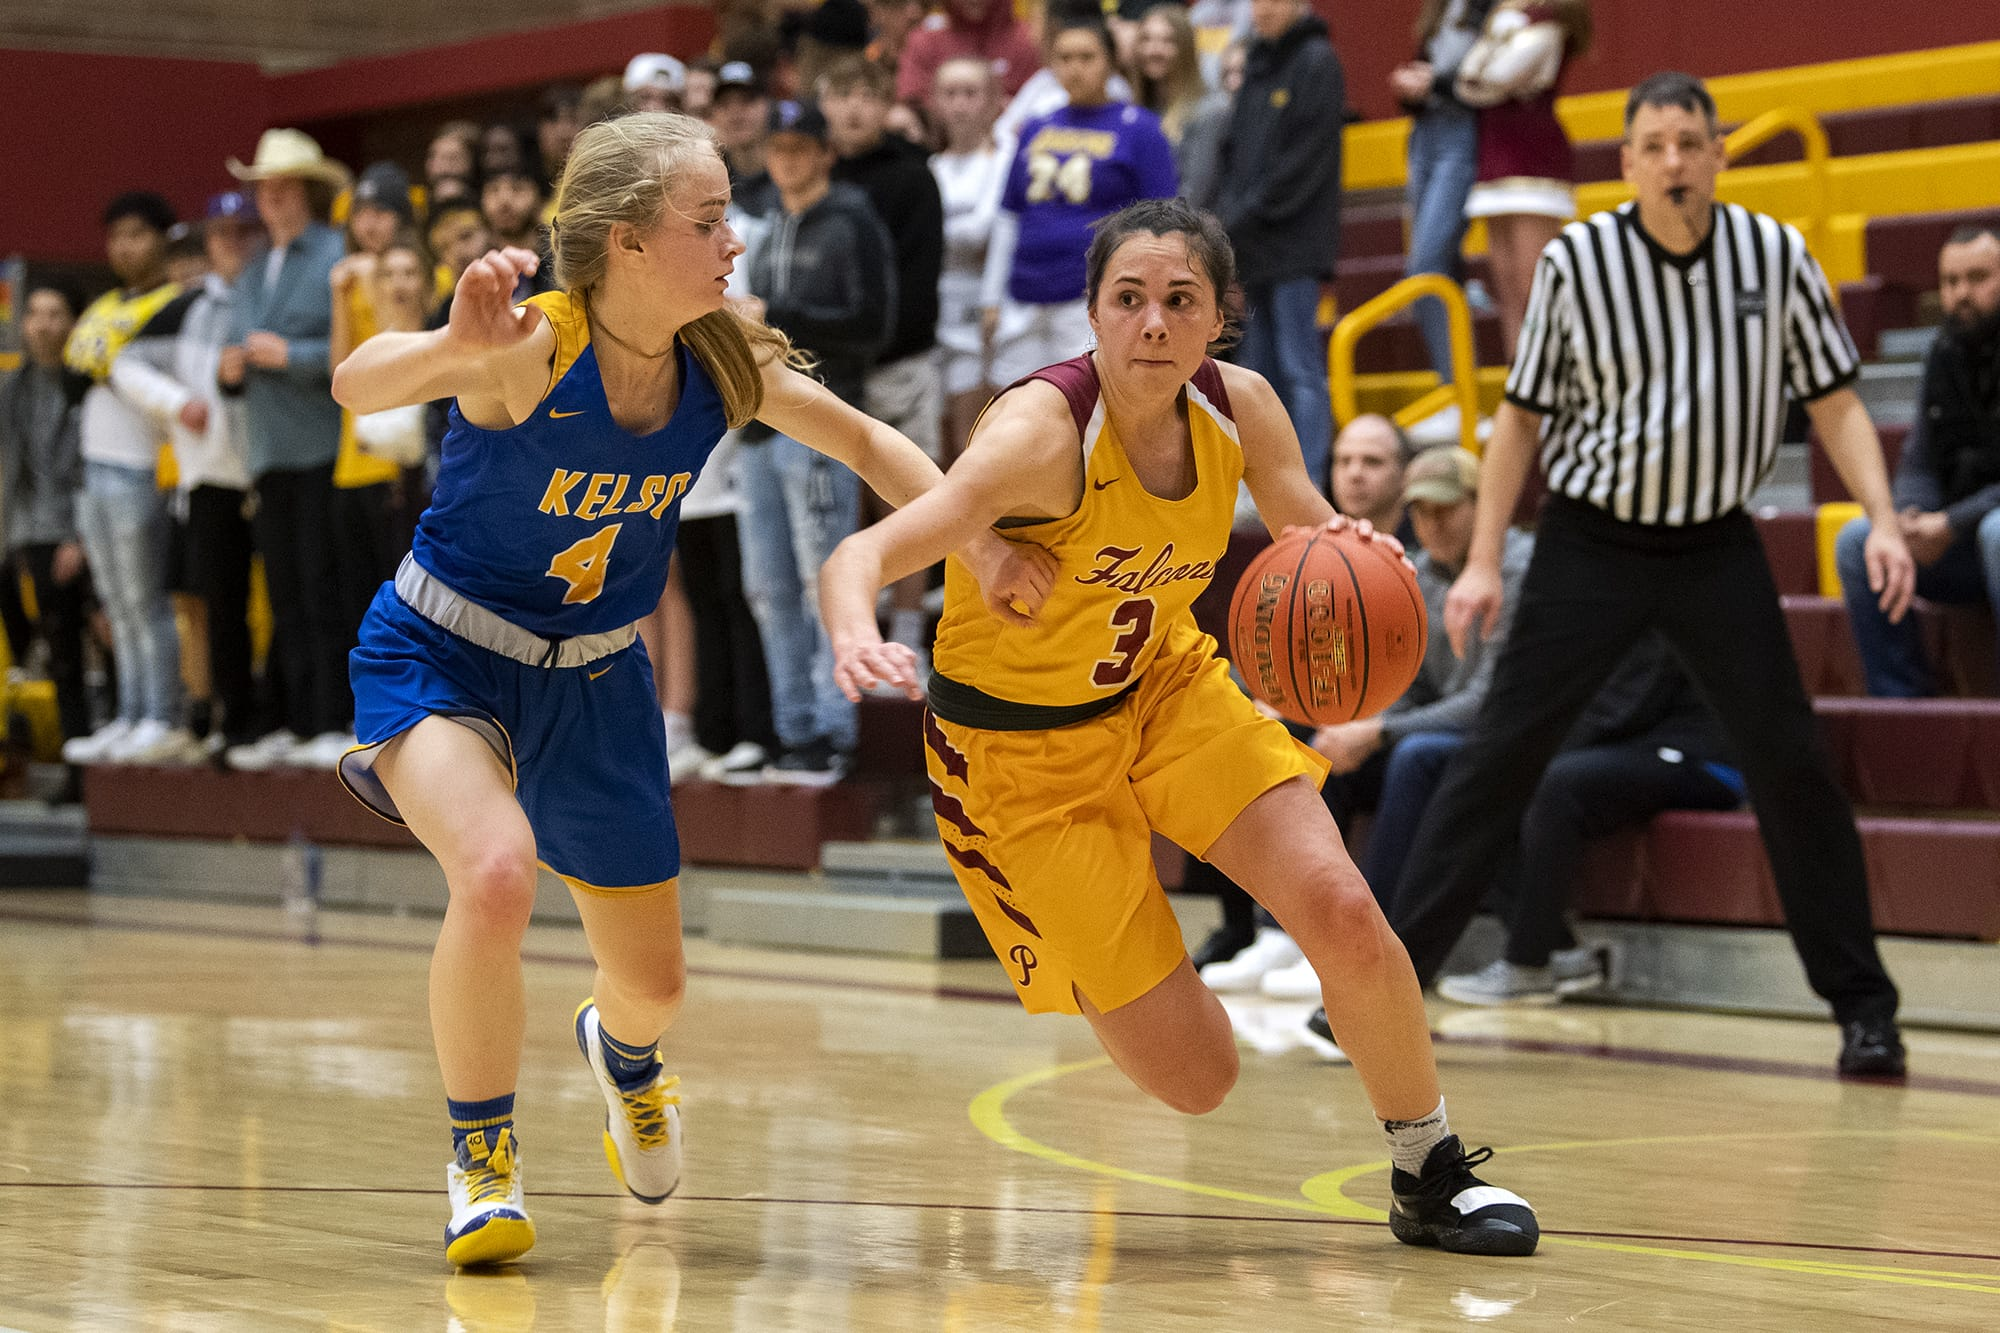 Kelso's Alexis Kleven (4) defends Prairie's Meri Dunford (3) during Tuesday night's game at Prairie High School in Vancouver on Jan. 28, 2020.